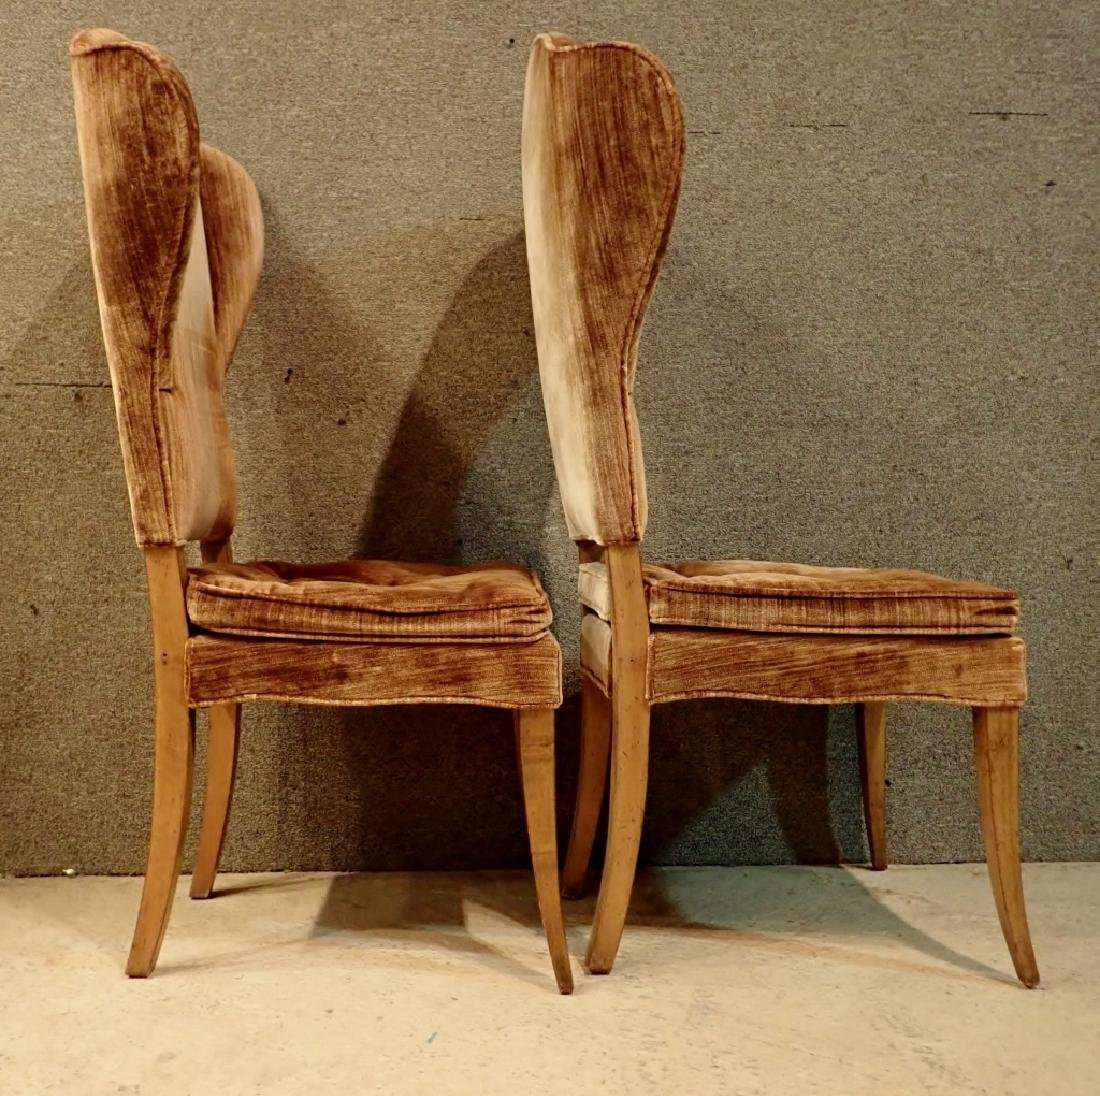 Pair of Velvet Upholstered Wooden Chairs - 2